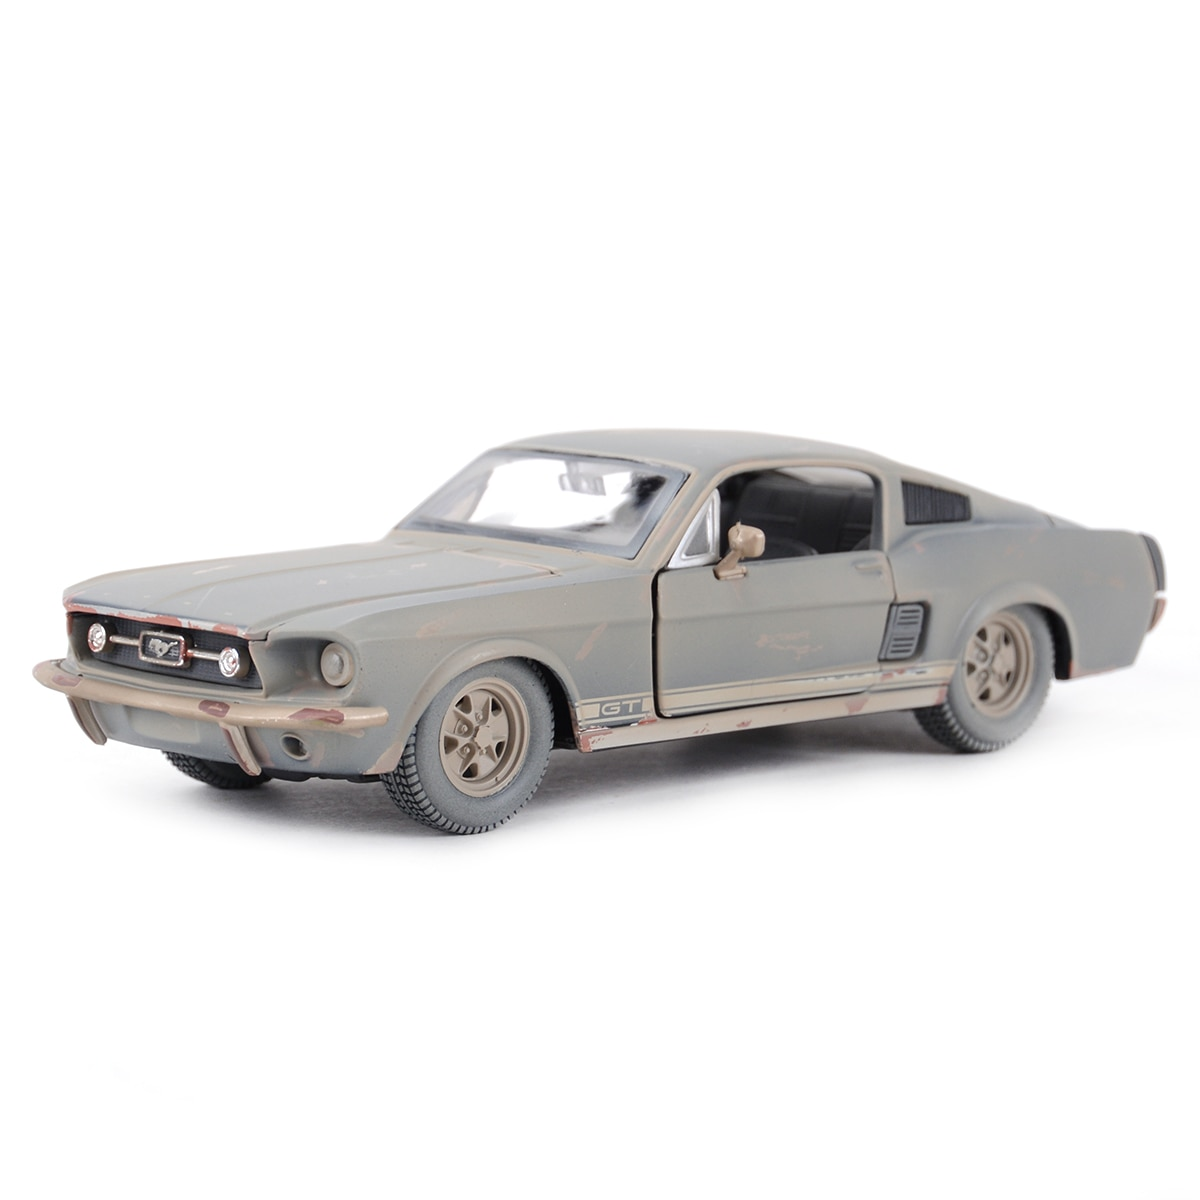 Maisto 1:24 1967 Ford Mustang GT Make the old version Highly-detailed die-cast precision model car Model collection gift